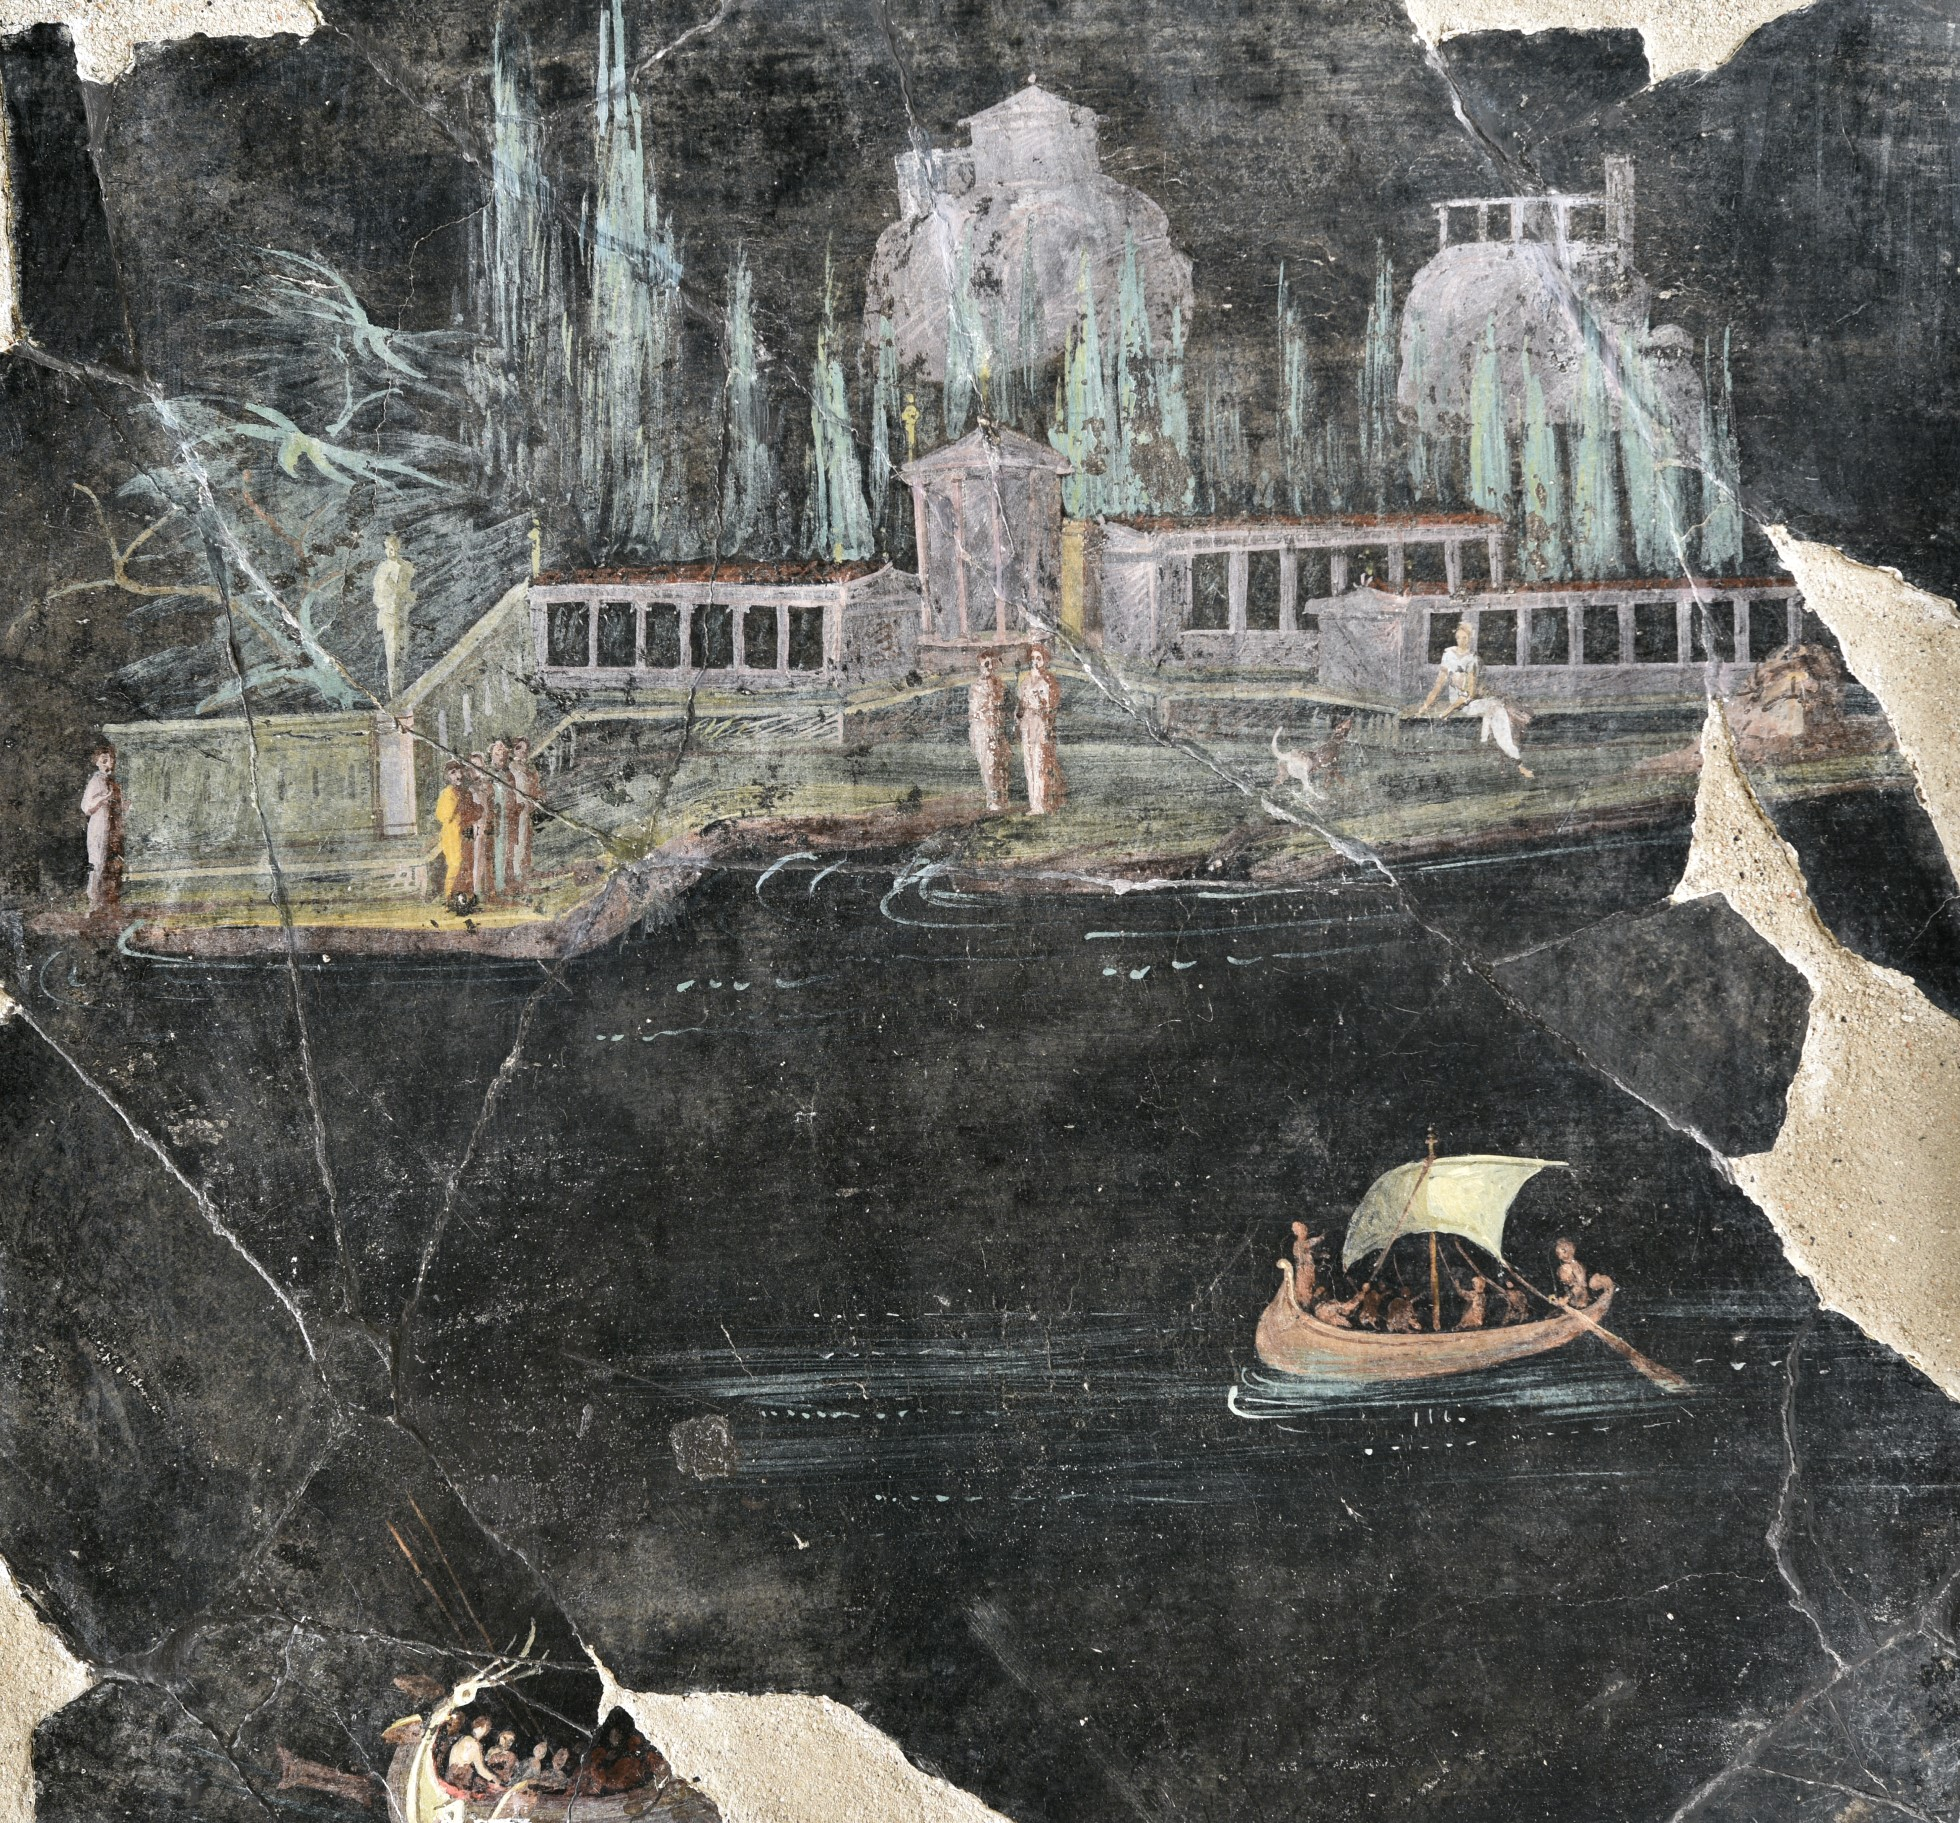 Painting, which is partially damaged, showing a landscape with architecture and boats. The background and water is a dark grey or black. The house is surrounded by a colonnade and there are trees and statues in the garden. Two boars can be seen in the water, One has a sale and oars.